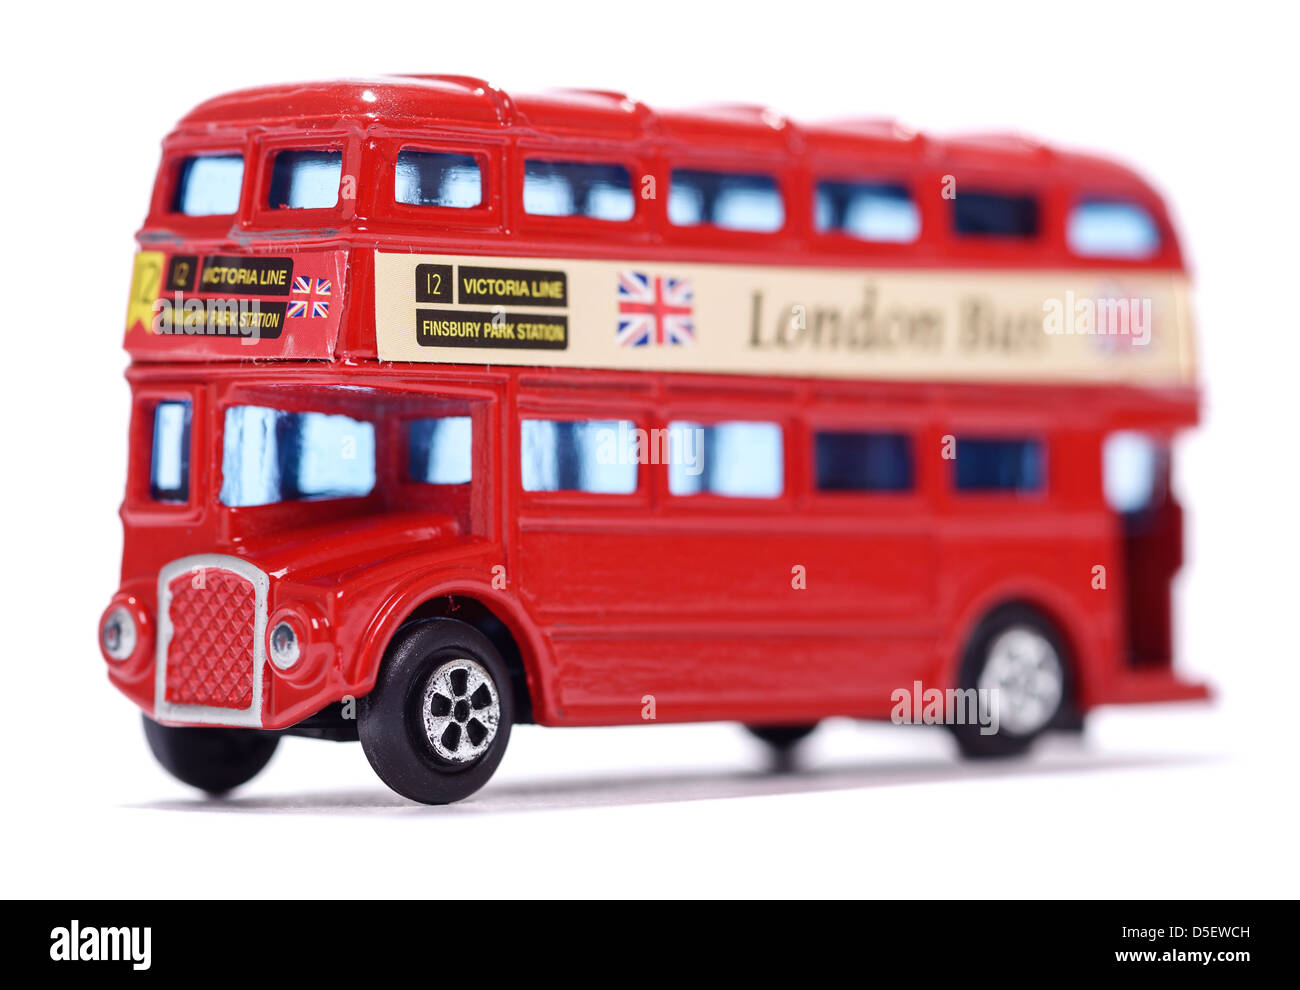 Toy red London bus - Stock Image